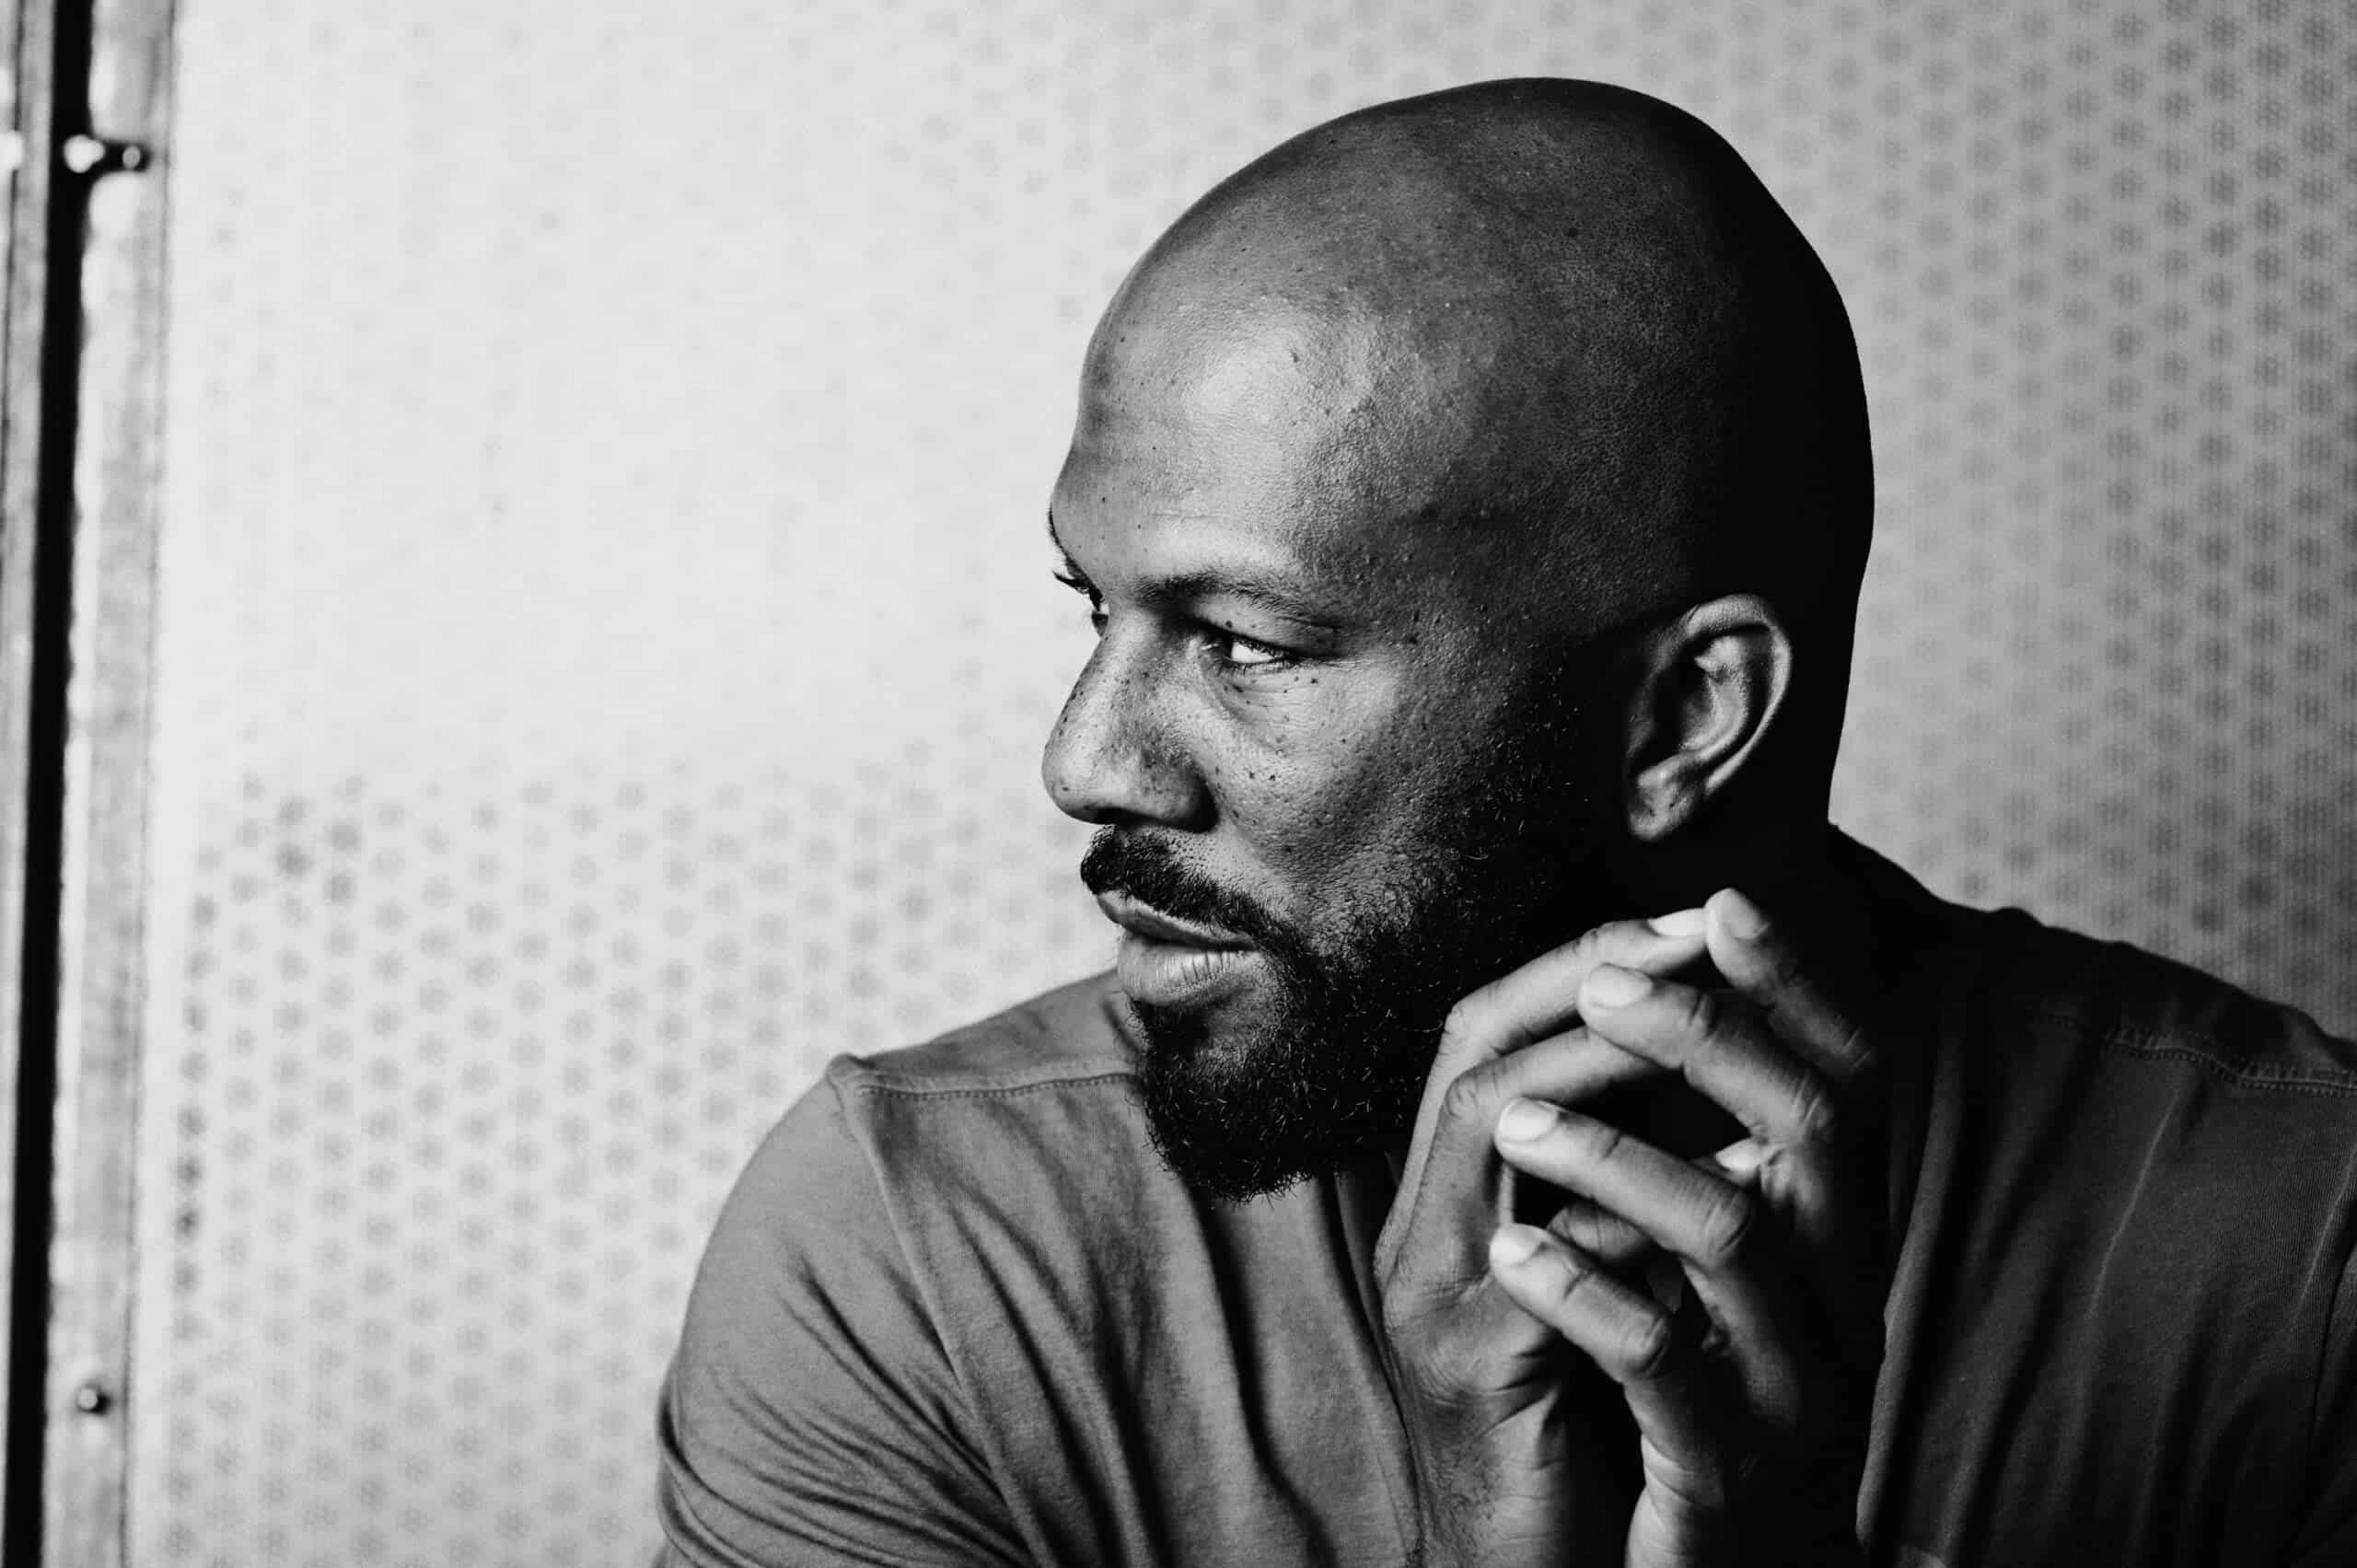 Ilja Meefout - Portraits of Hip Hop - Common